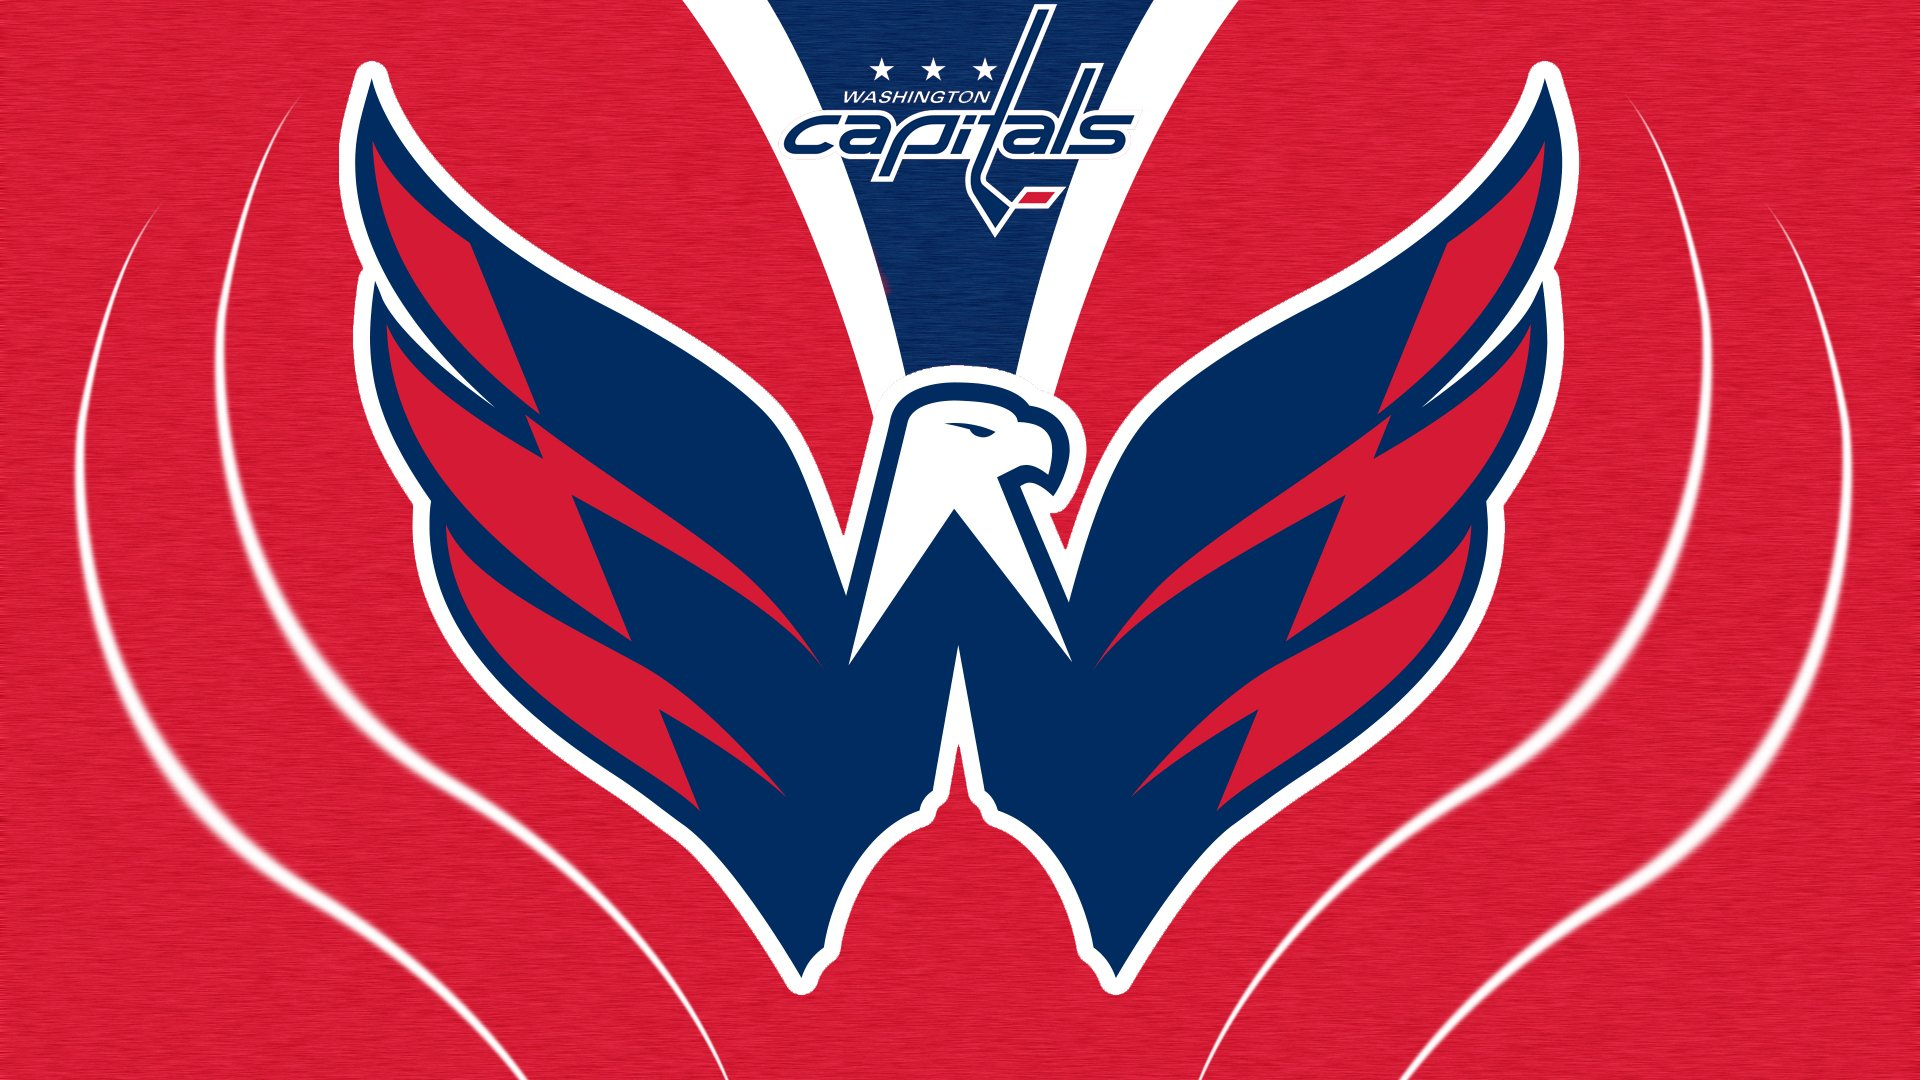 WASHINGTON CAPITALS hockey nhl 52 wallpaper 1920x1080 359694 1920x1080